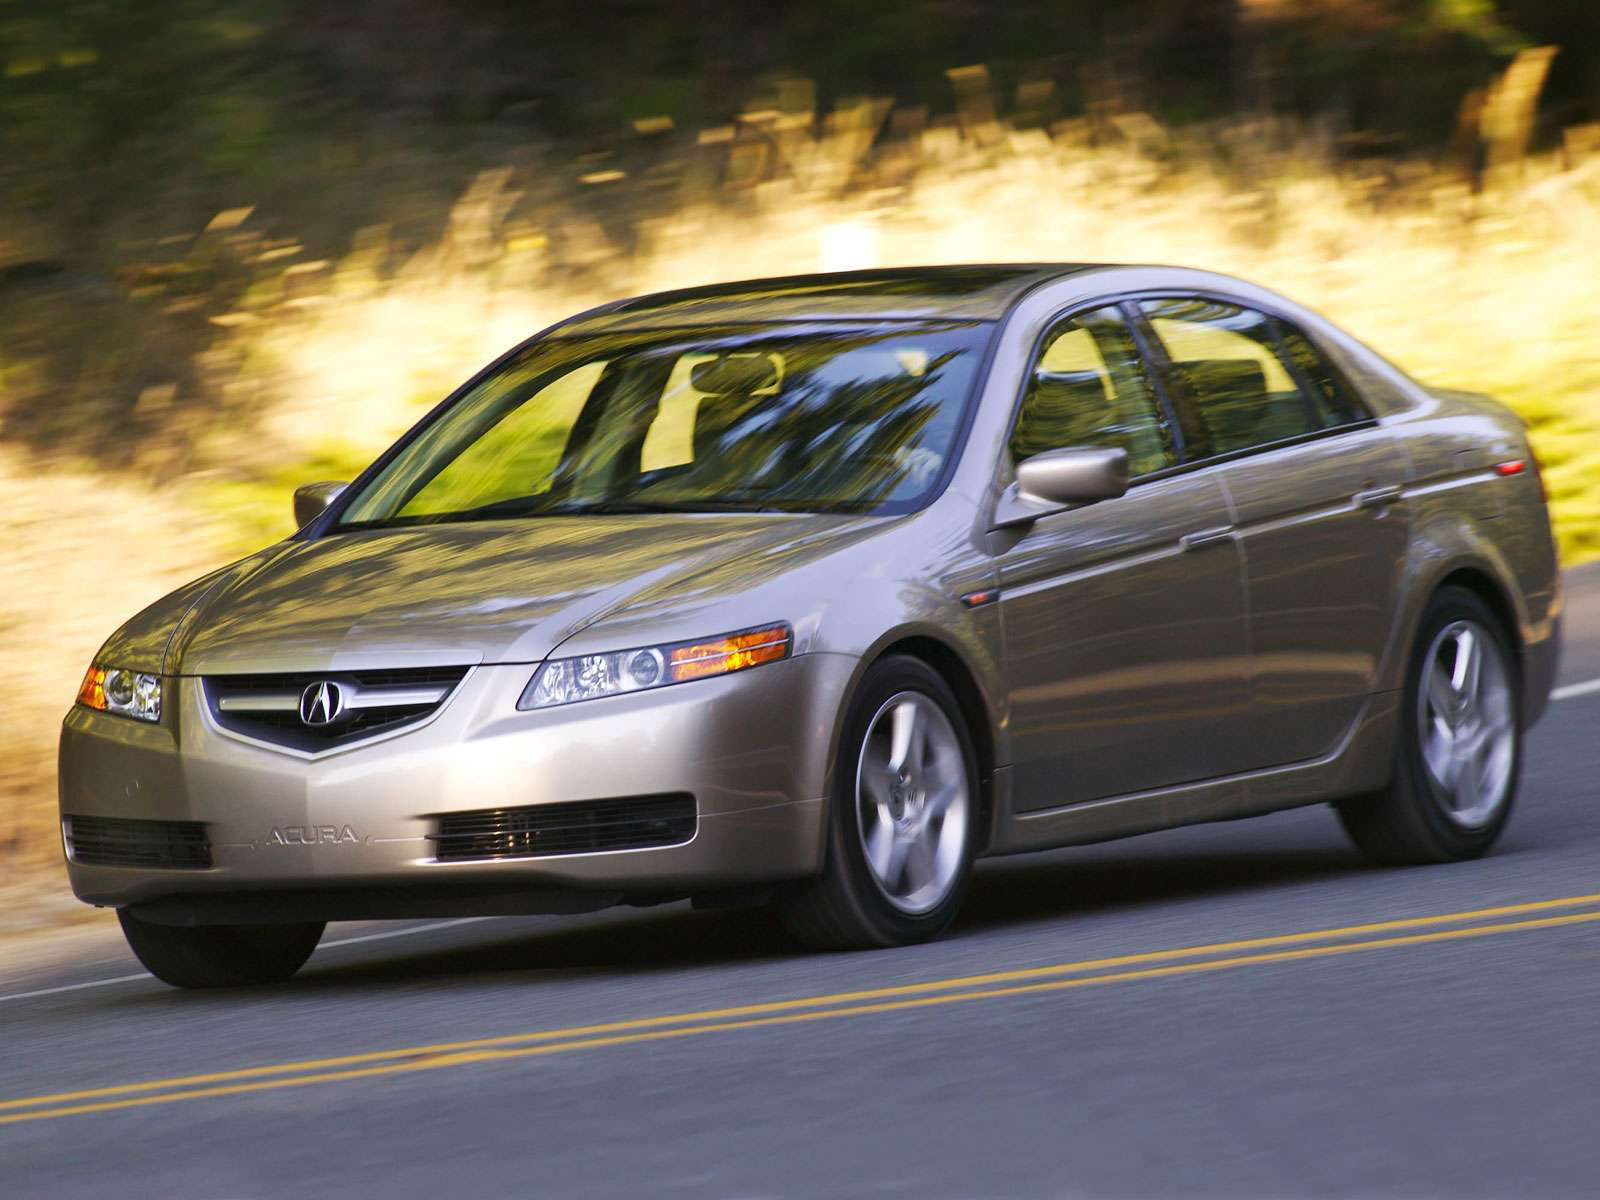 tl tn and hi ideas auto images img on used acura black with for smyrna sale in new com